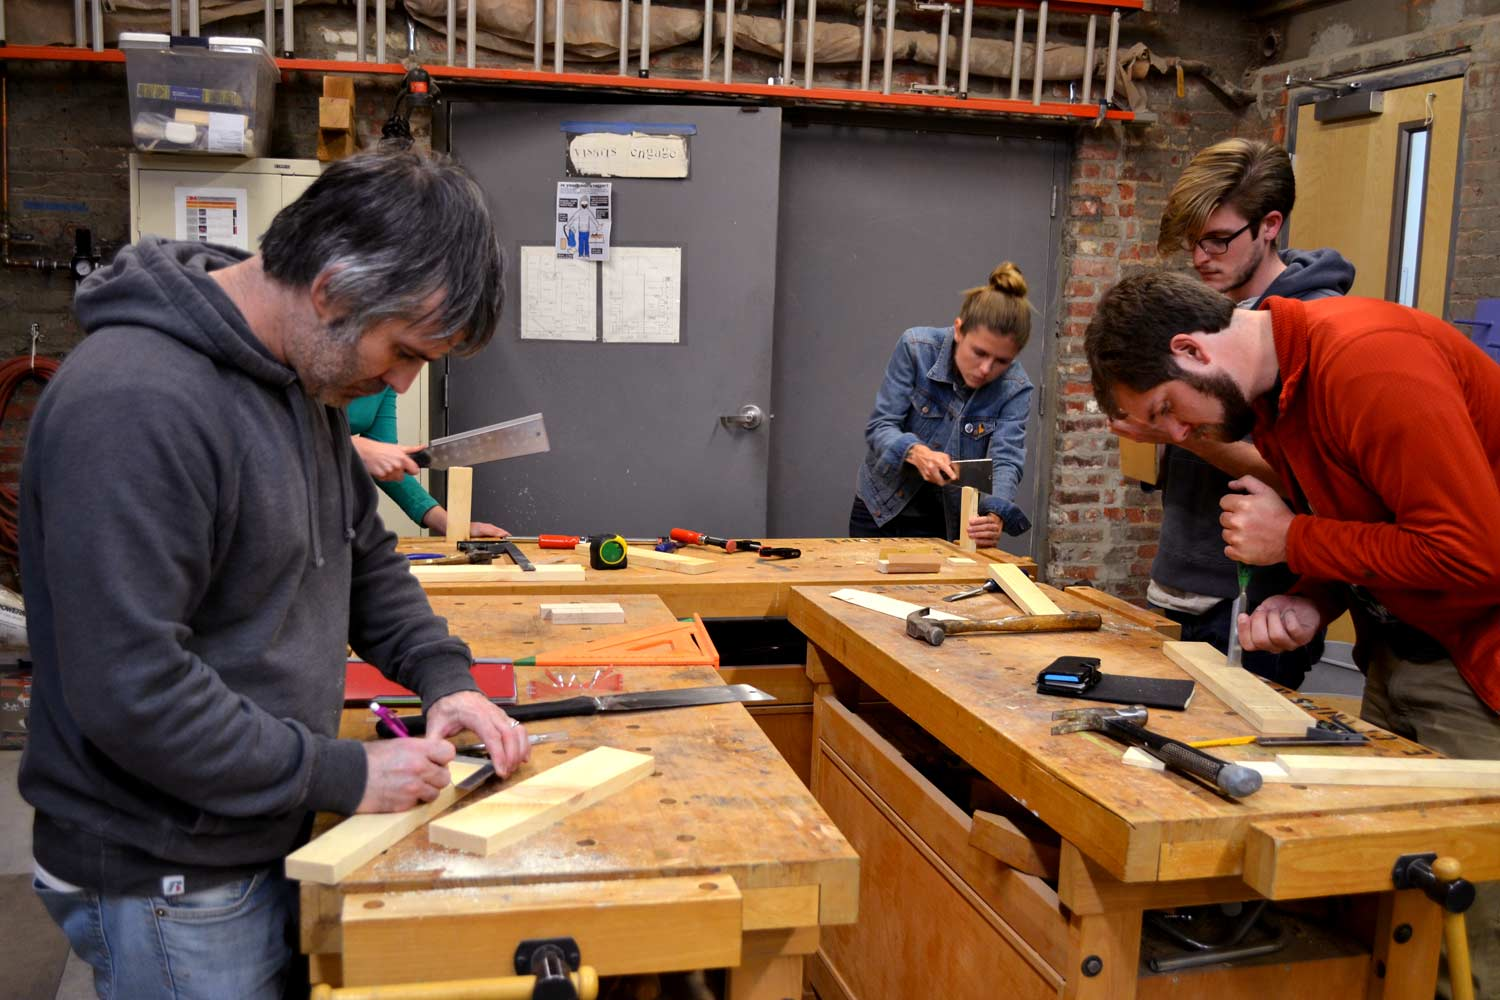 intro-to-woodworking-10 - visual arts center of richmond